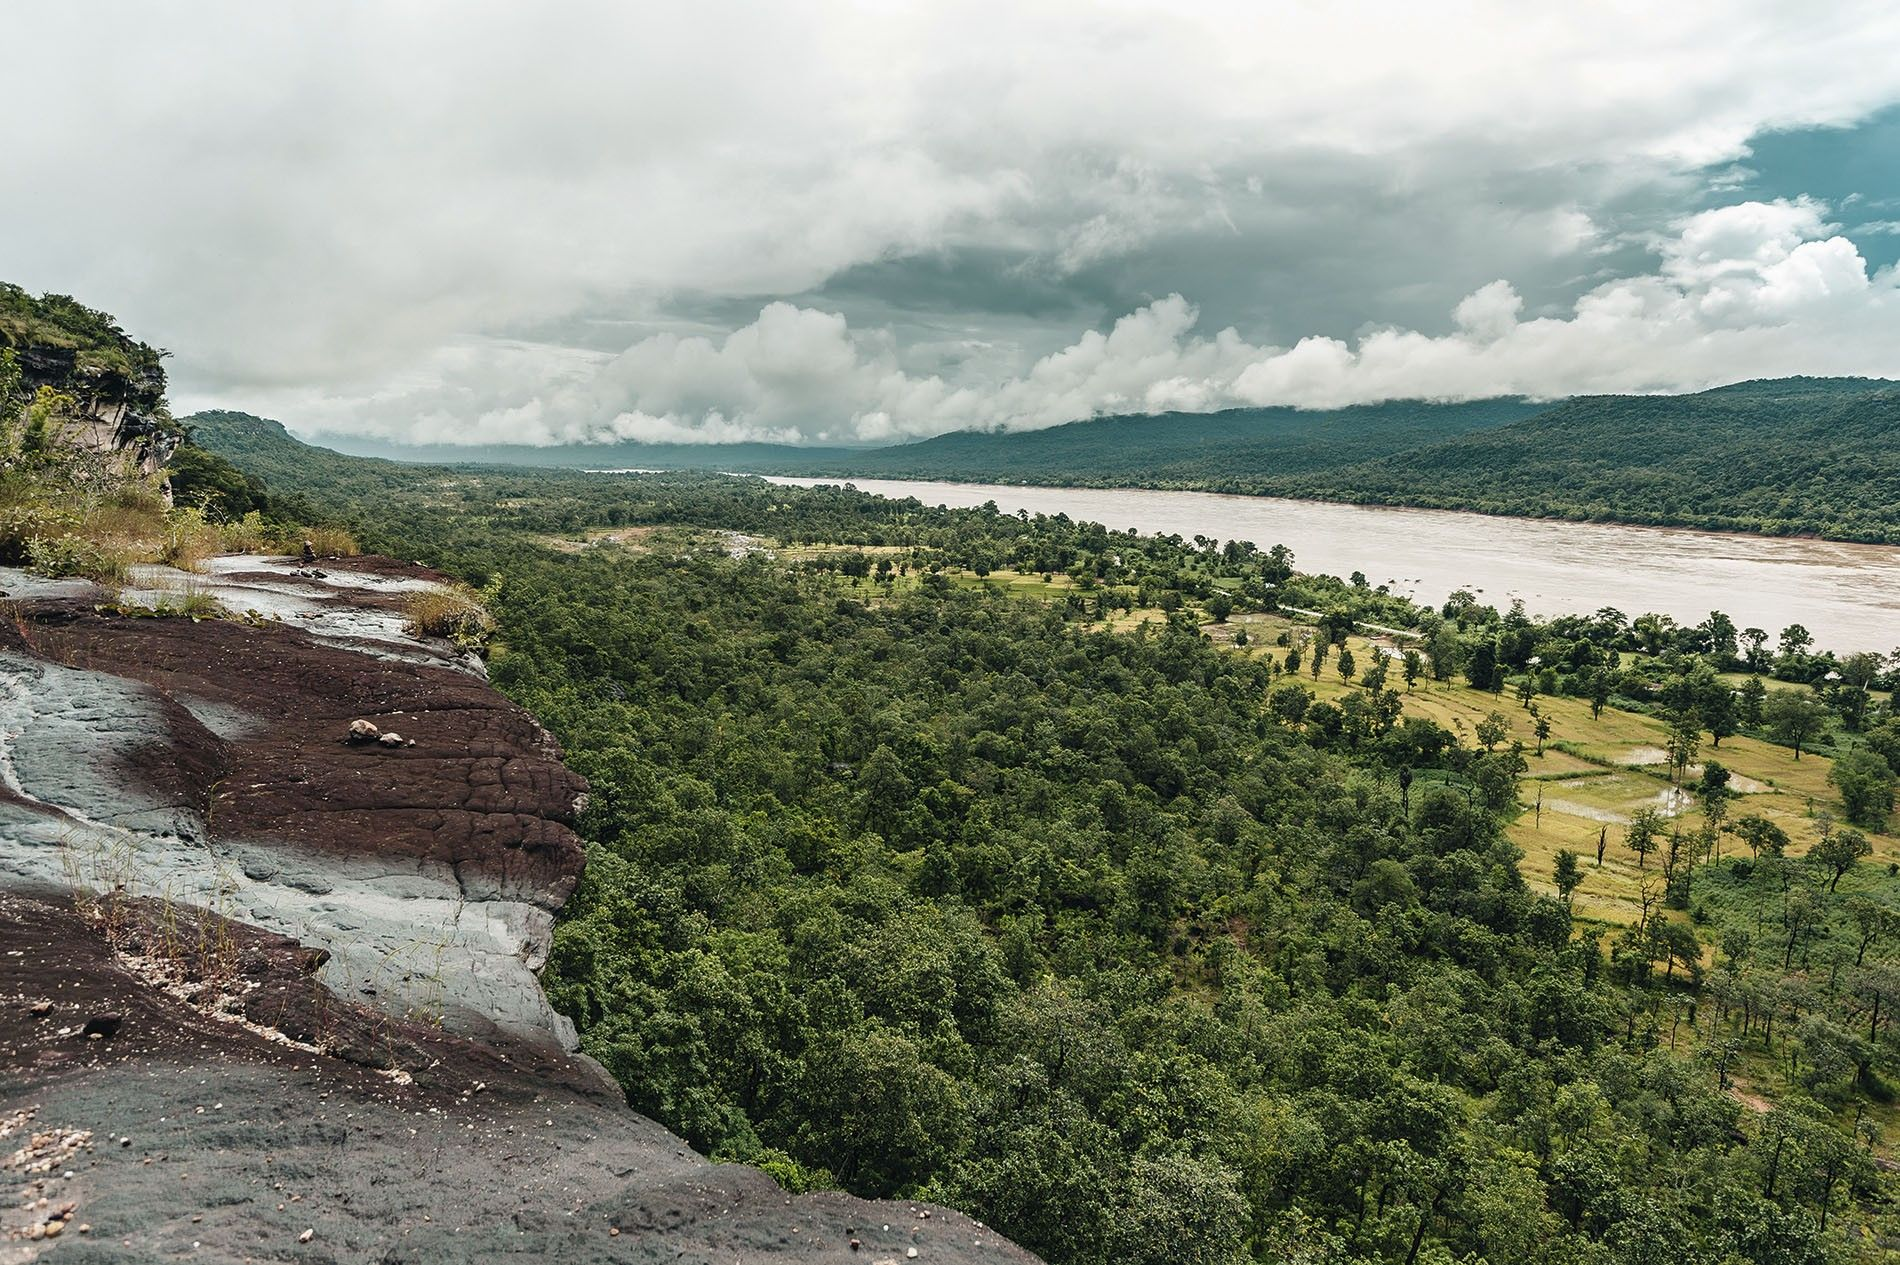 View from the top of Chanadai cliff in Pha Taem National park